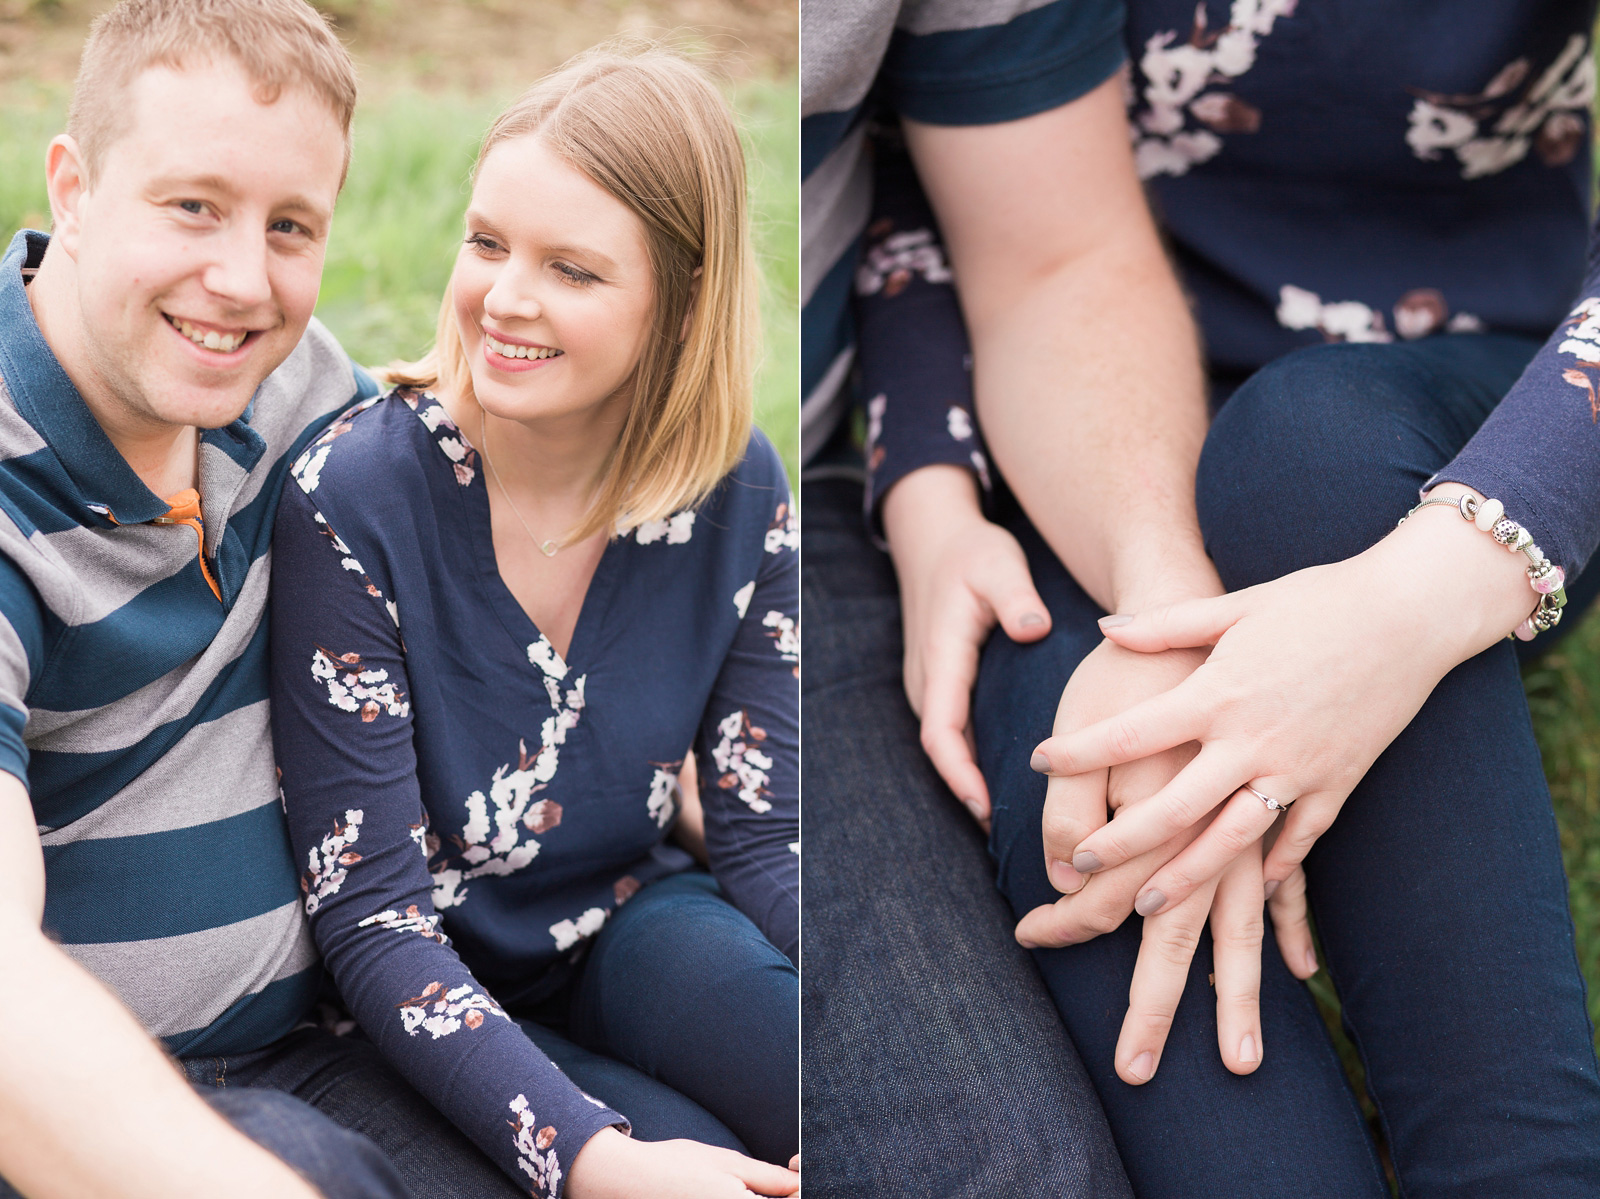 Dreamy woodland engagement shoot candid moments between couple